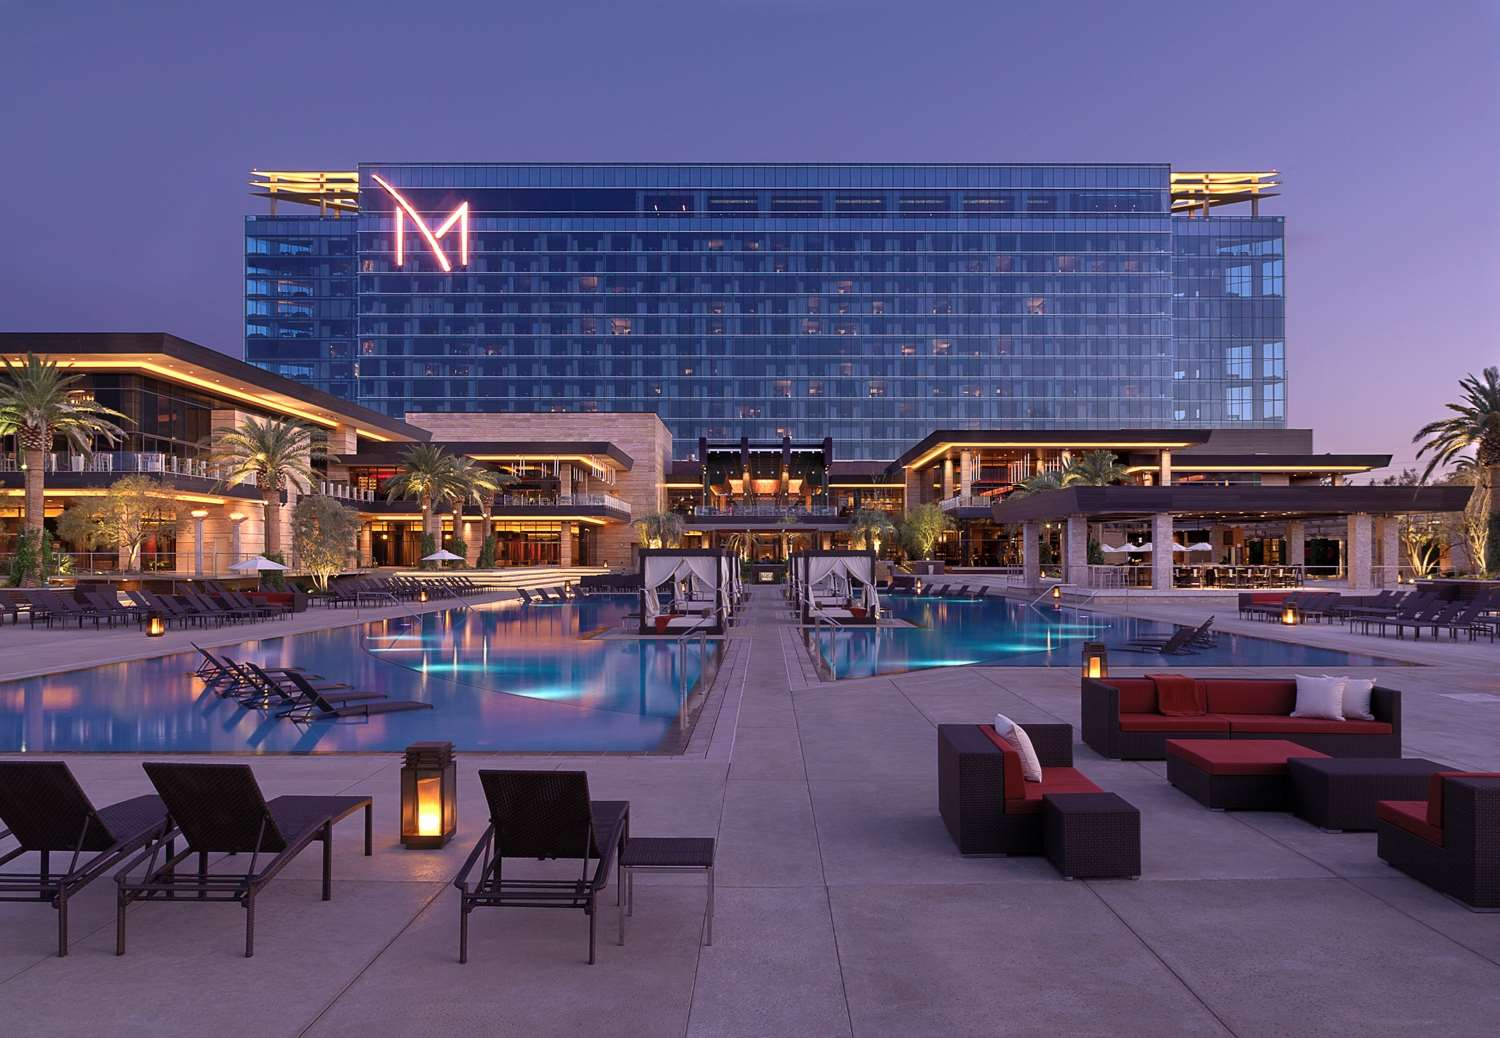 Pool - M Resort Spa Casino Henderson